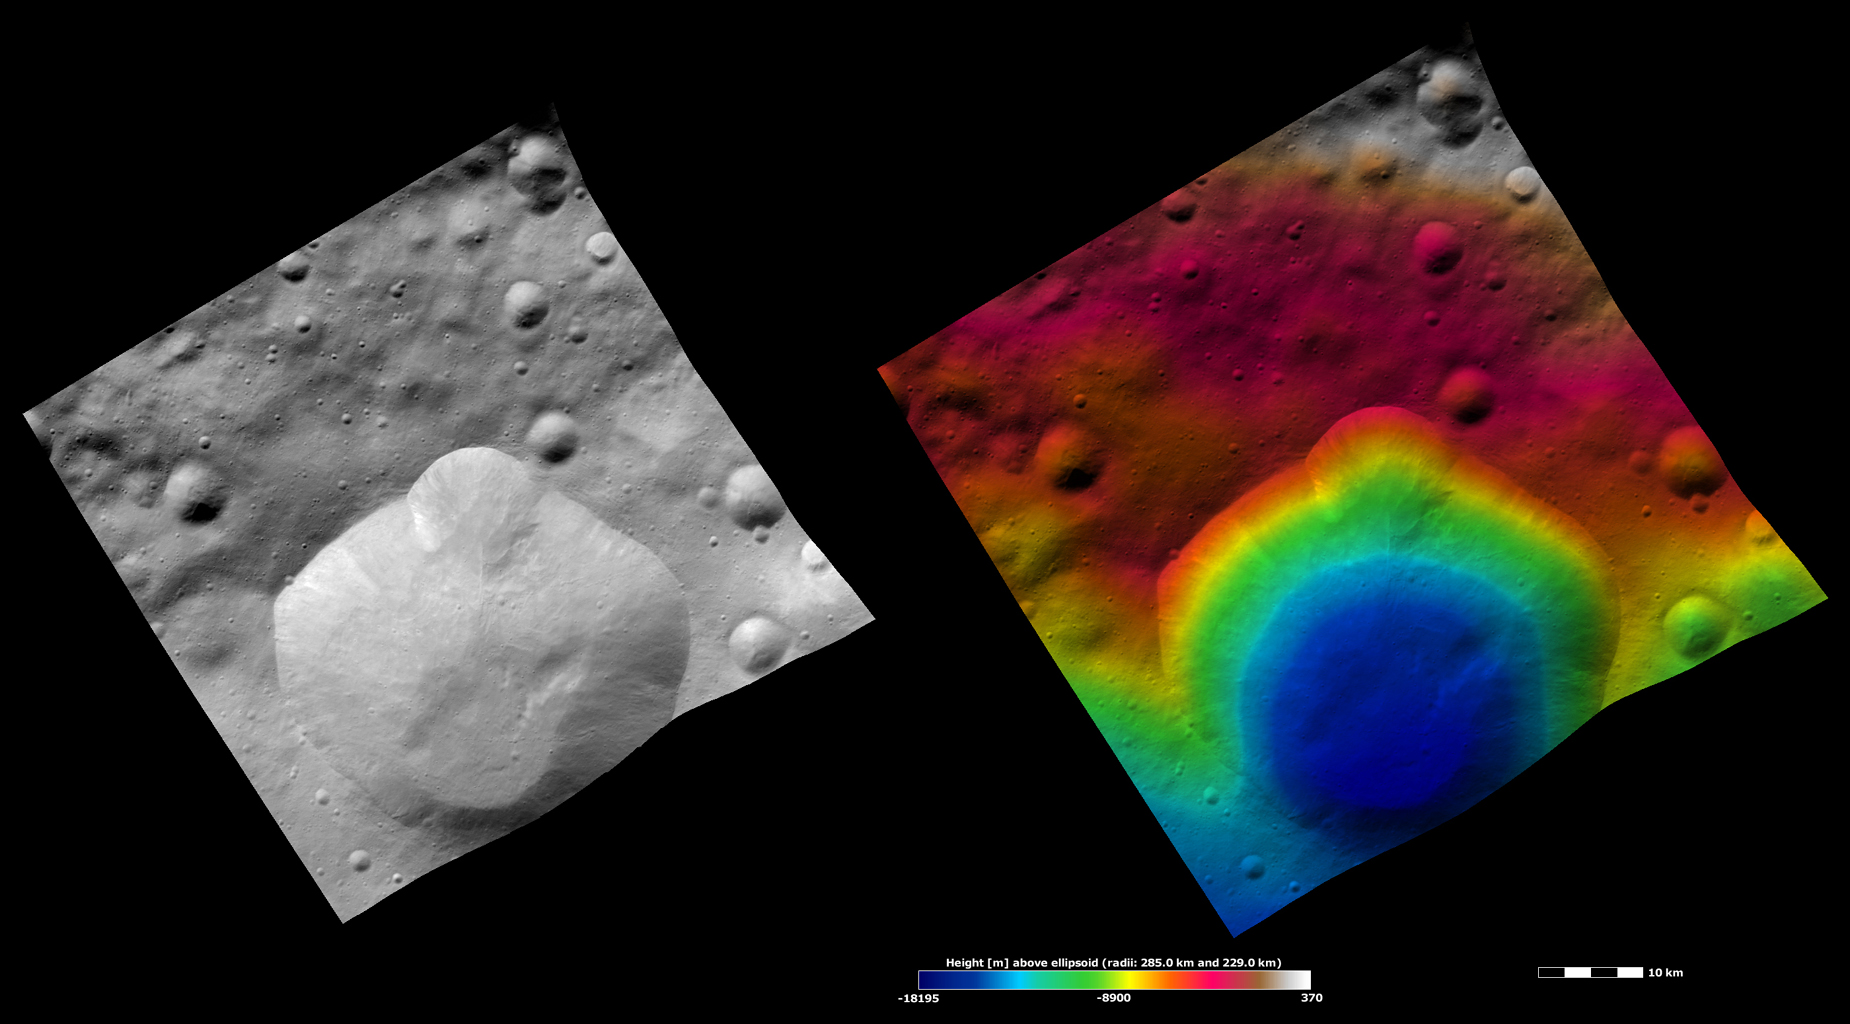 These apparent brightness and topography images from NASA's Dawn spacecraft are located in asteroid Vesta's Floronia quadrangle, in Vesta's northern hemisphere.